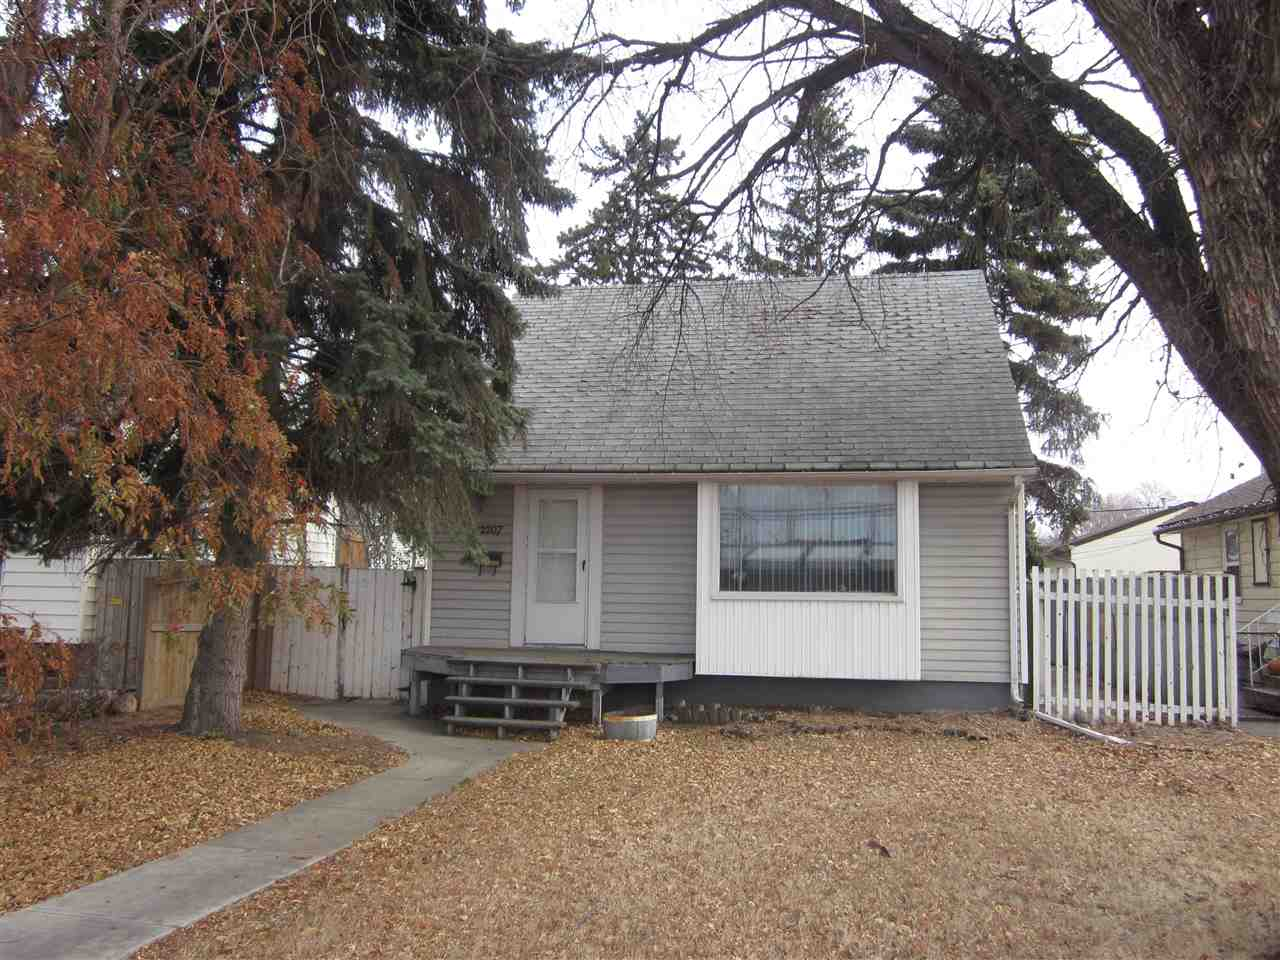 Great starter home for first time home buyer or investor located in mature community of Westwood. It is walking distance to the Vanguard College, NAIT Campus, Kingsway Mall, the LRT system, Royal Alexandra Hospital and great access to the bussing routes. This 5 bedroom and 2 bath home has tons of character and sits on a 42 x 150 lot with double detached garage.